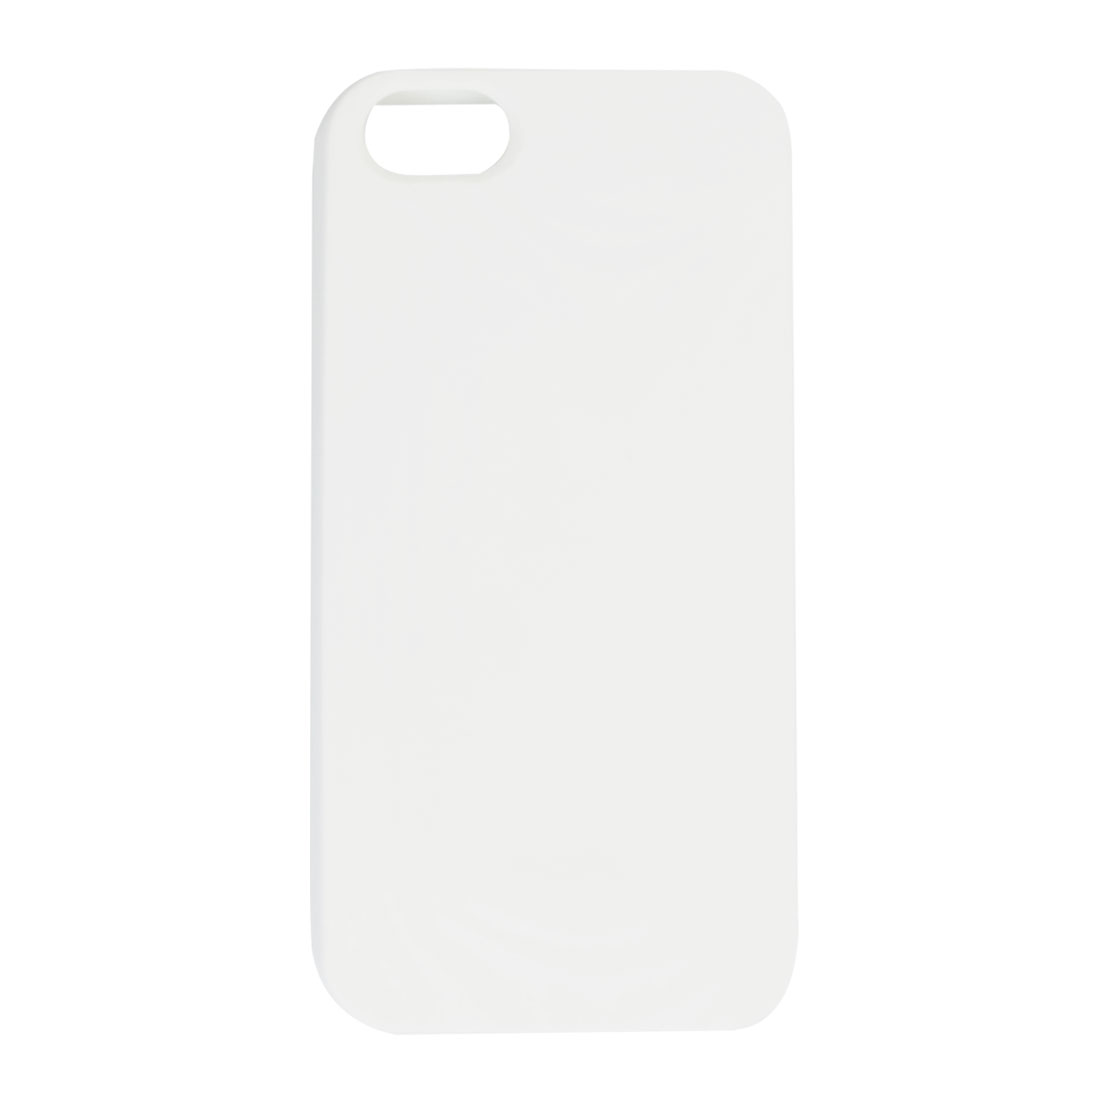 White Soft Plastic Embossed Protective Back Cover Case Shell for iPhone 5 5G